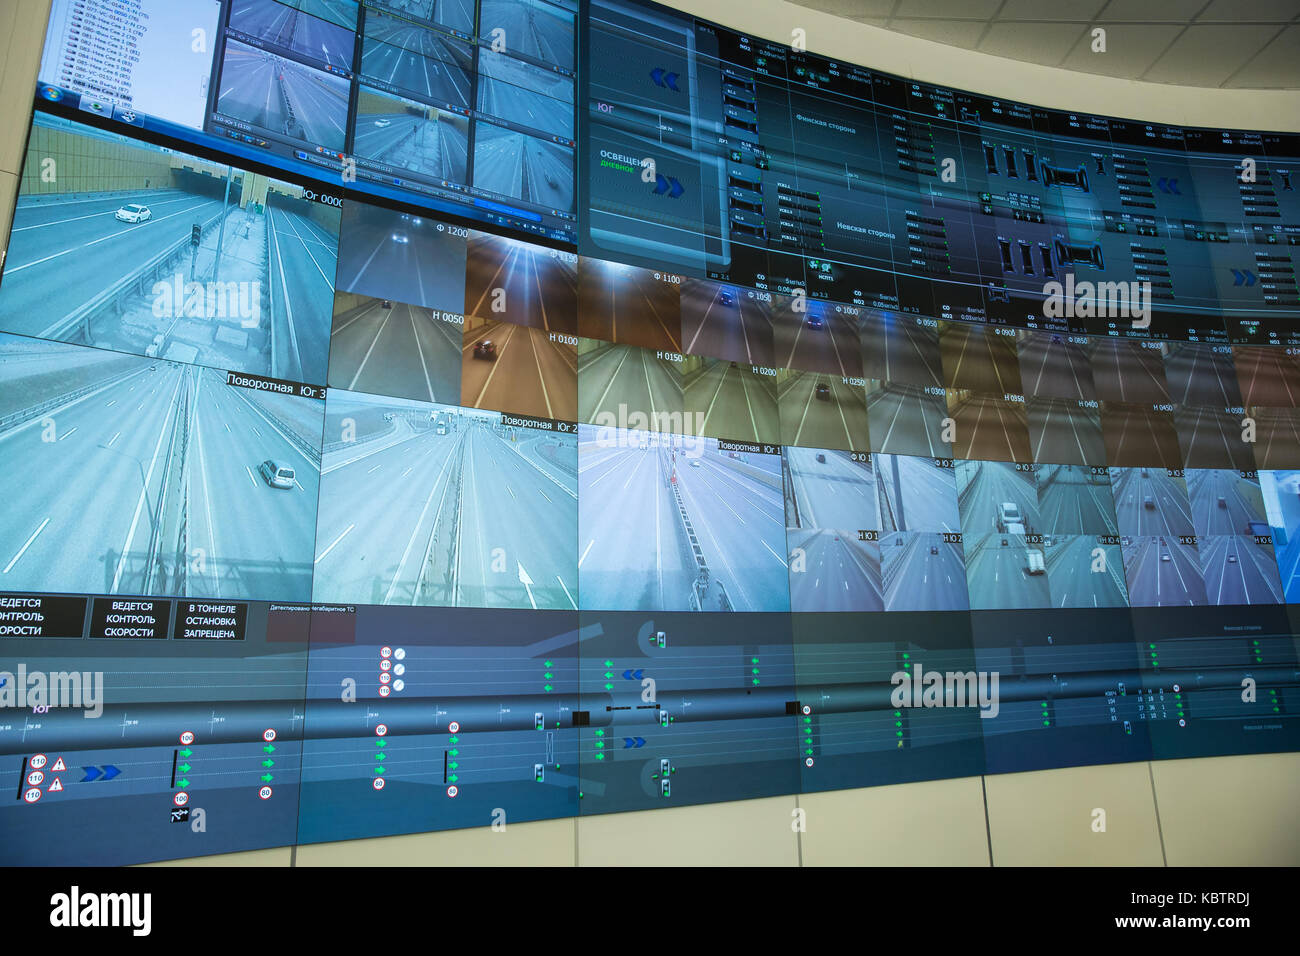 SAINT-PETERSBURG, RUSSIA - APRIL 12, 2015 - Central control panel an automobile tunnel under a ship canal. Flood - Stock Image